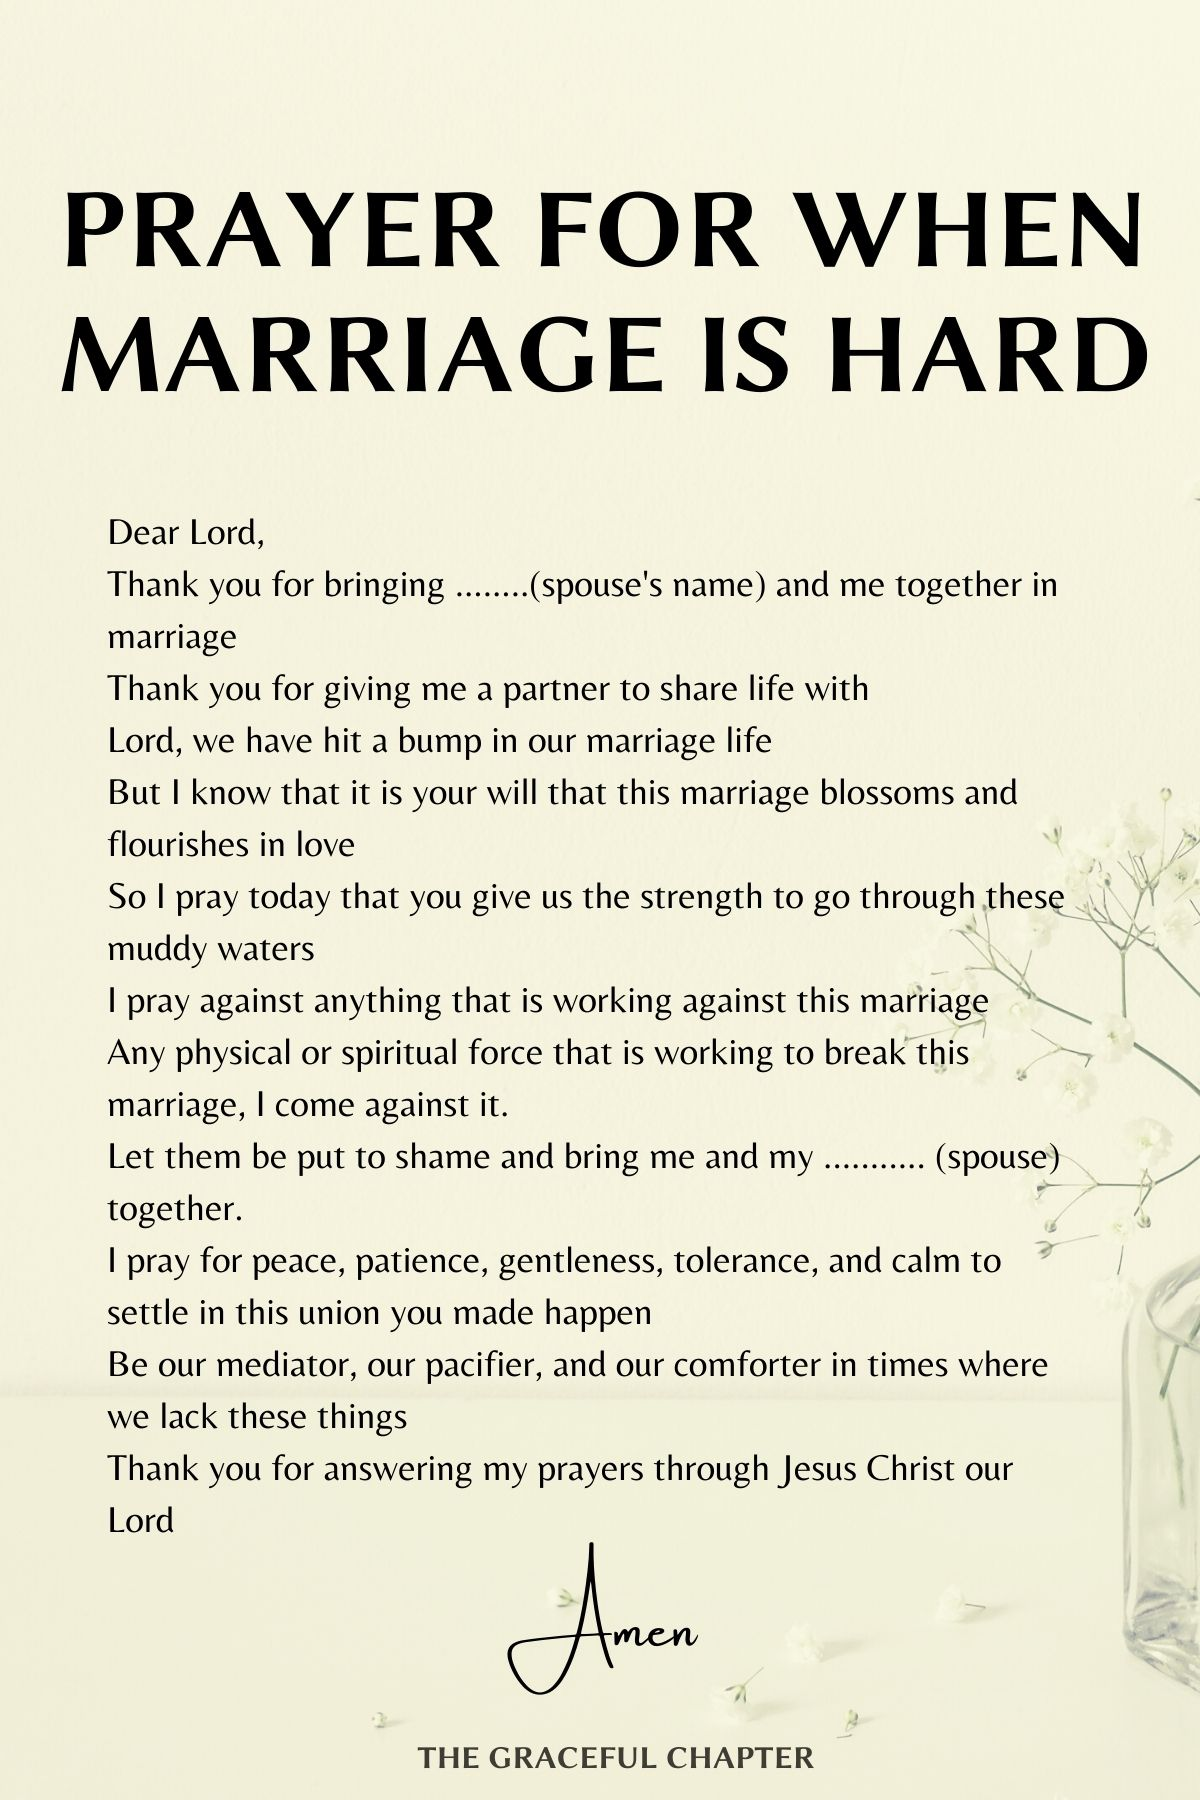 prayer for when marriage is hard